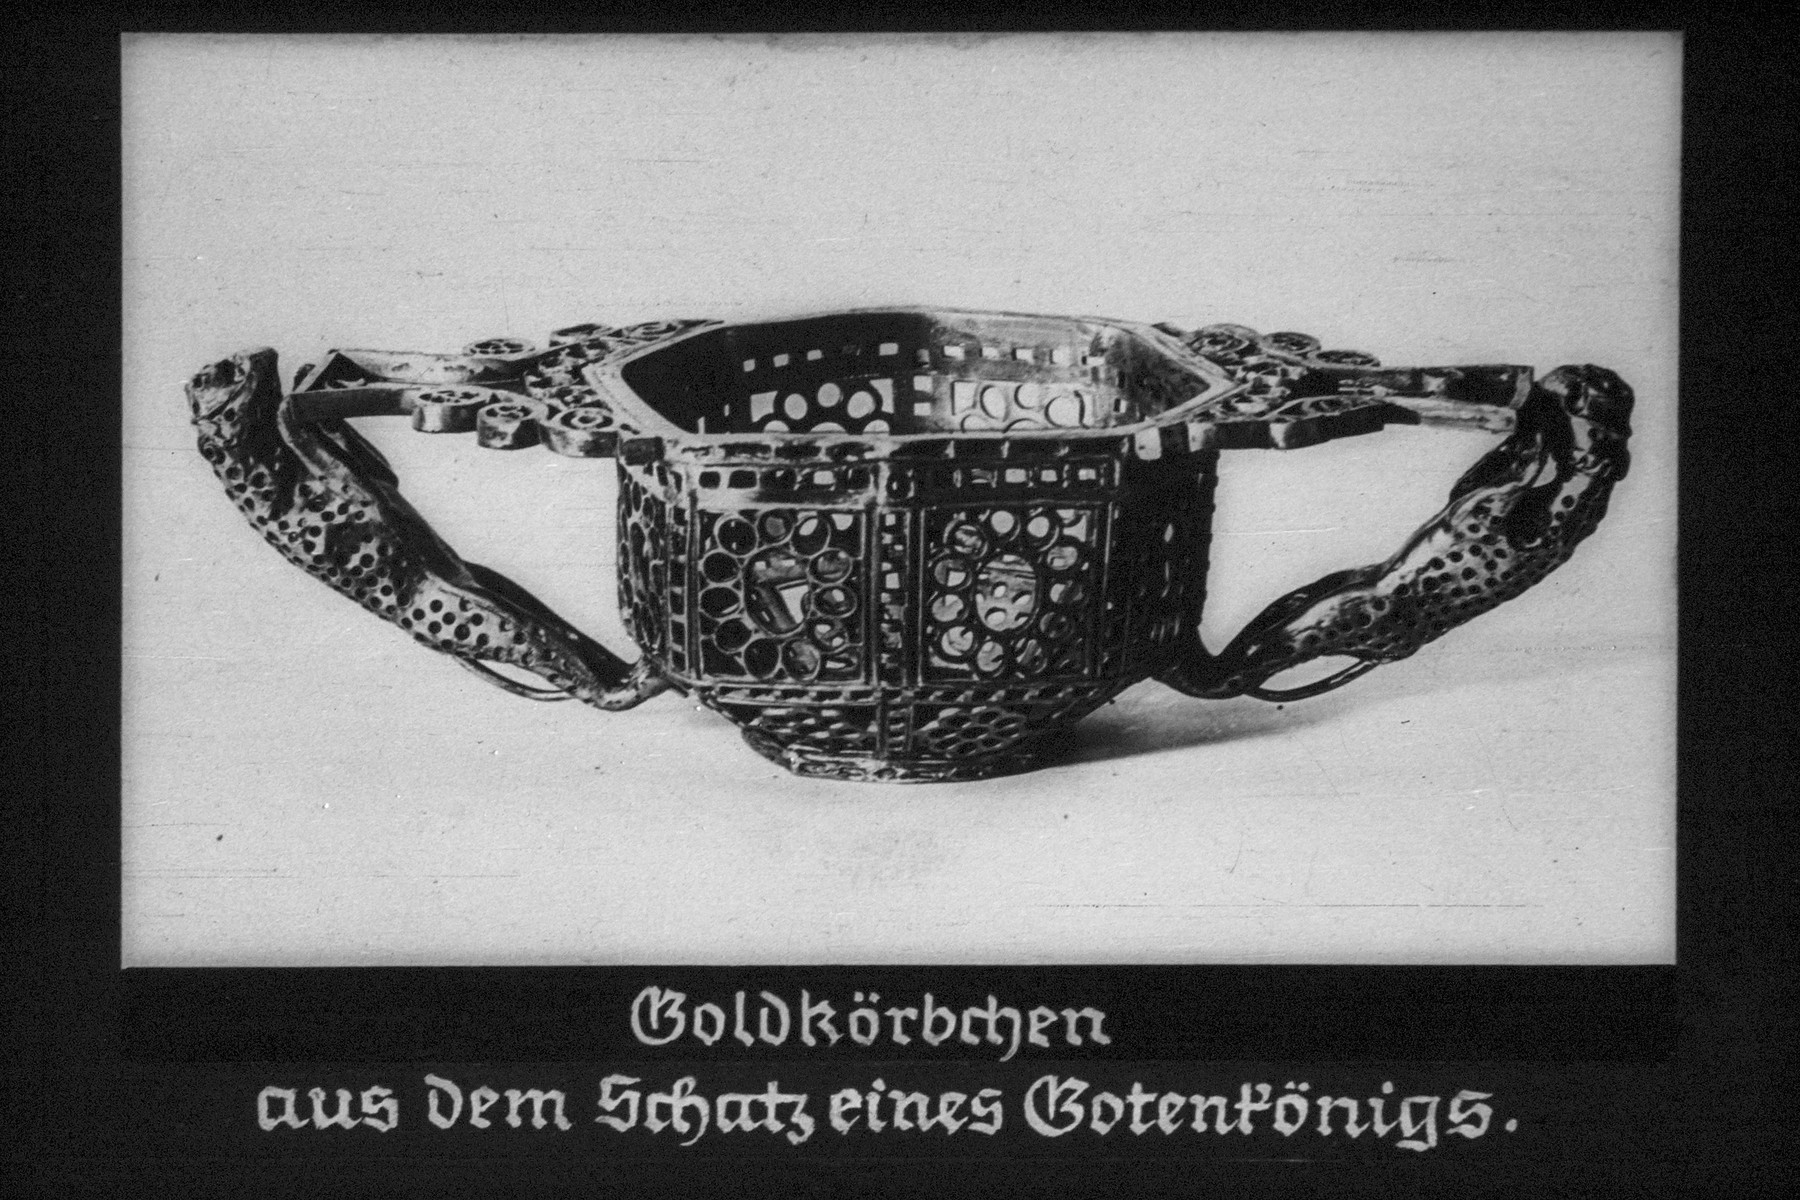 """34th Nazi propaganda slide for a Hitler Youth educational presentation entitled """"5000 years of German Culture.""""  Goldkorbchen aus dem Schatz eines Gotenkönigs // A gold basket from the treasure of a Gothic king"""